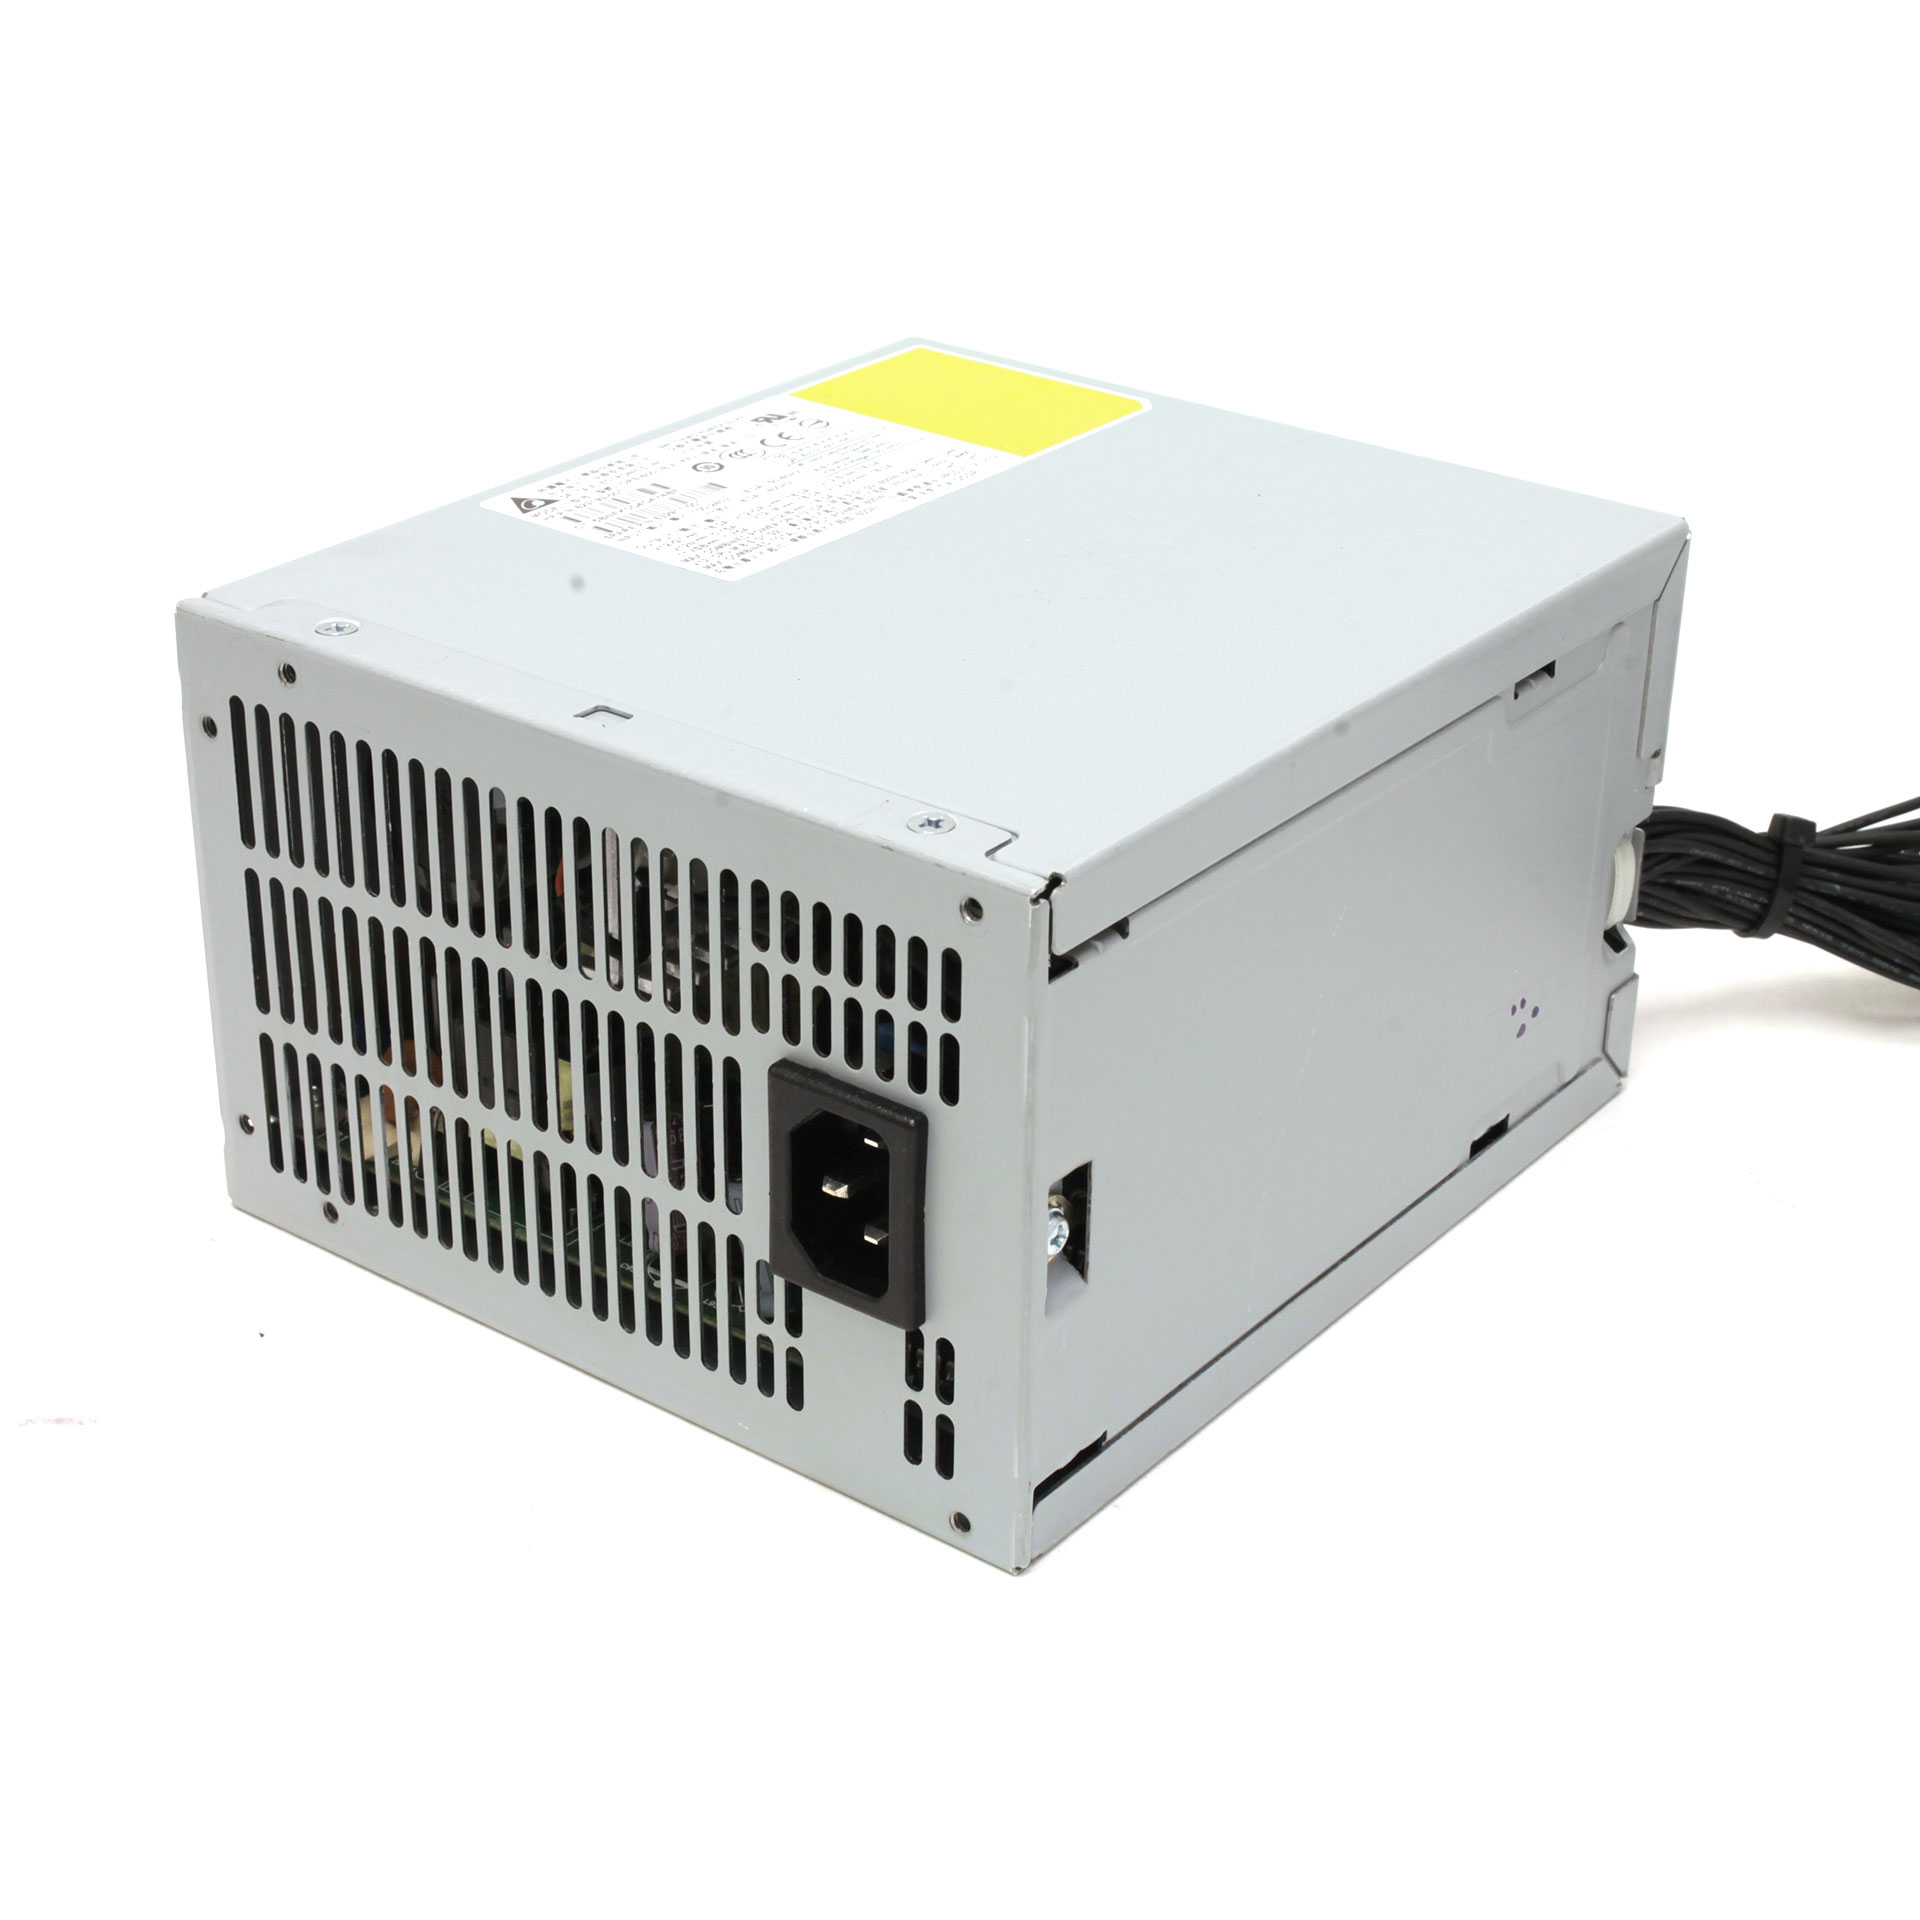 HP 632911-001 Z420 Workstation 600W Pfc Power Supply